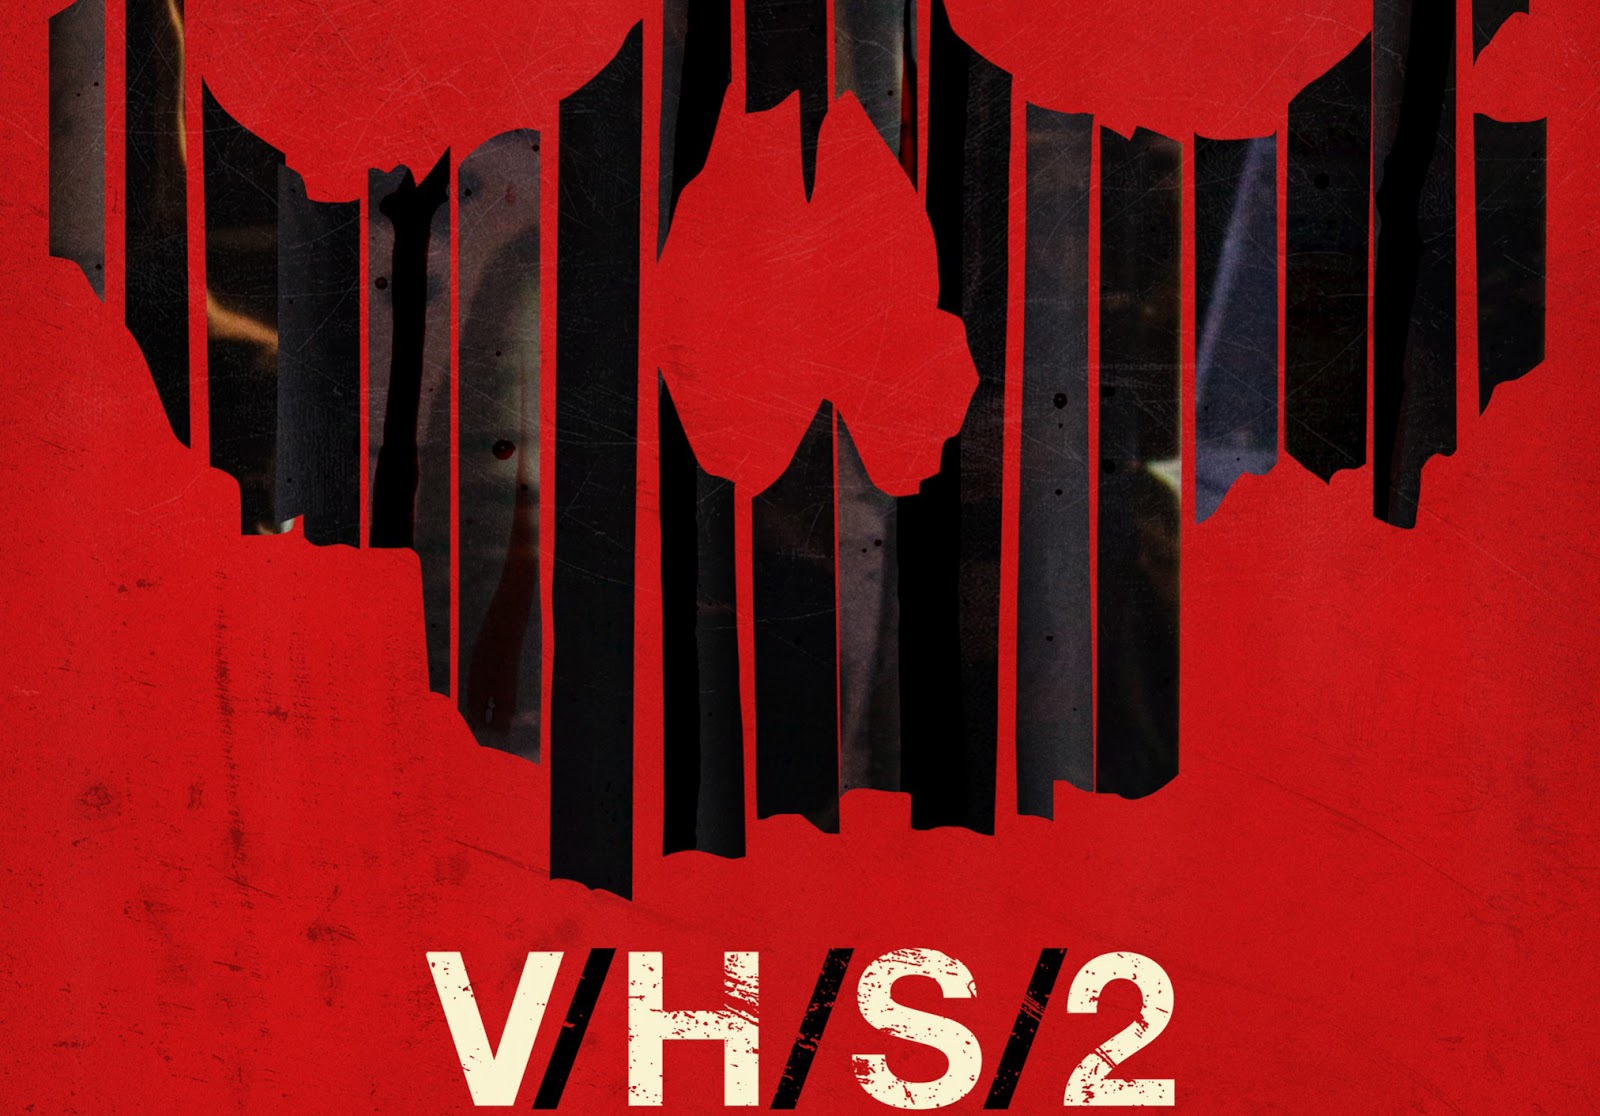 V/H/S/2: New Red Band Trailer - Undead Monday